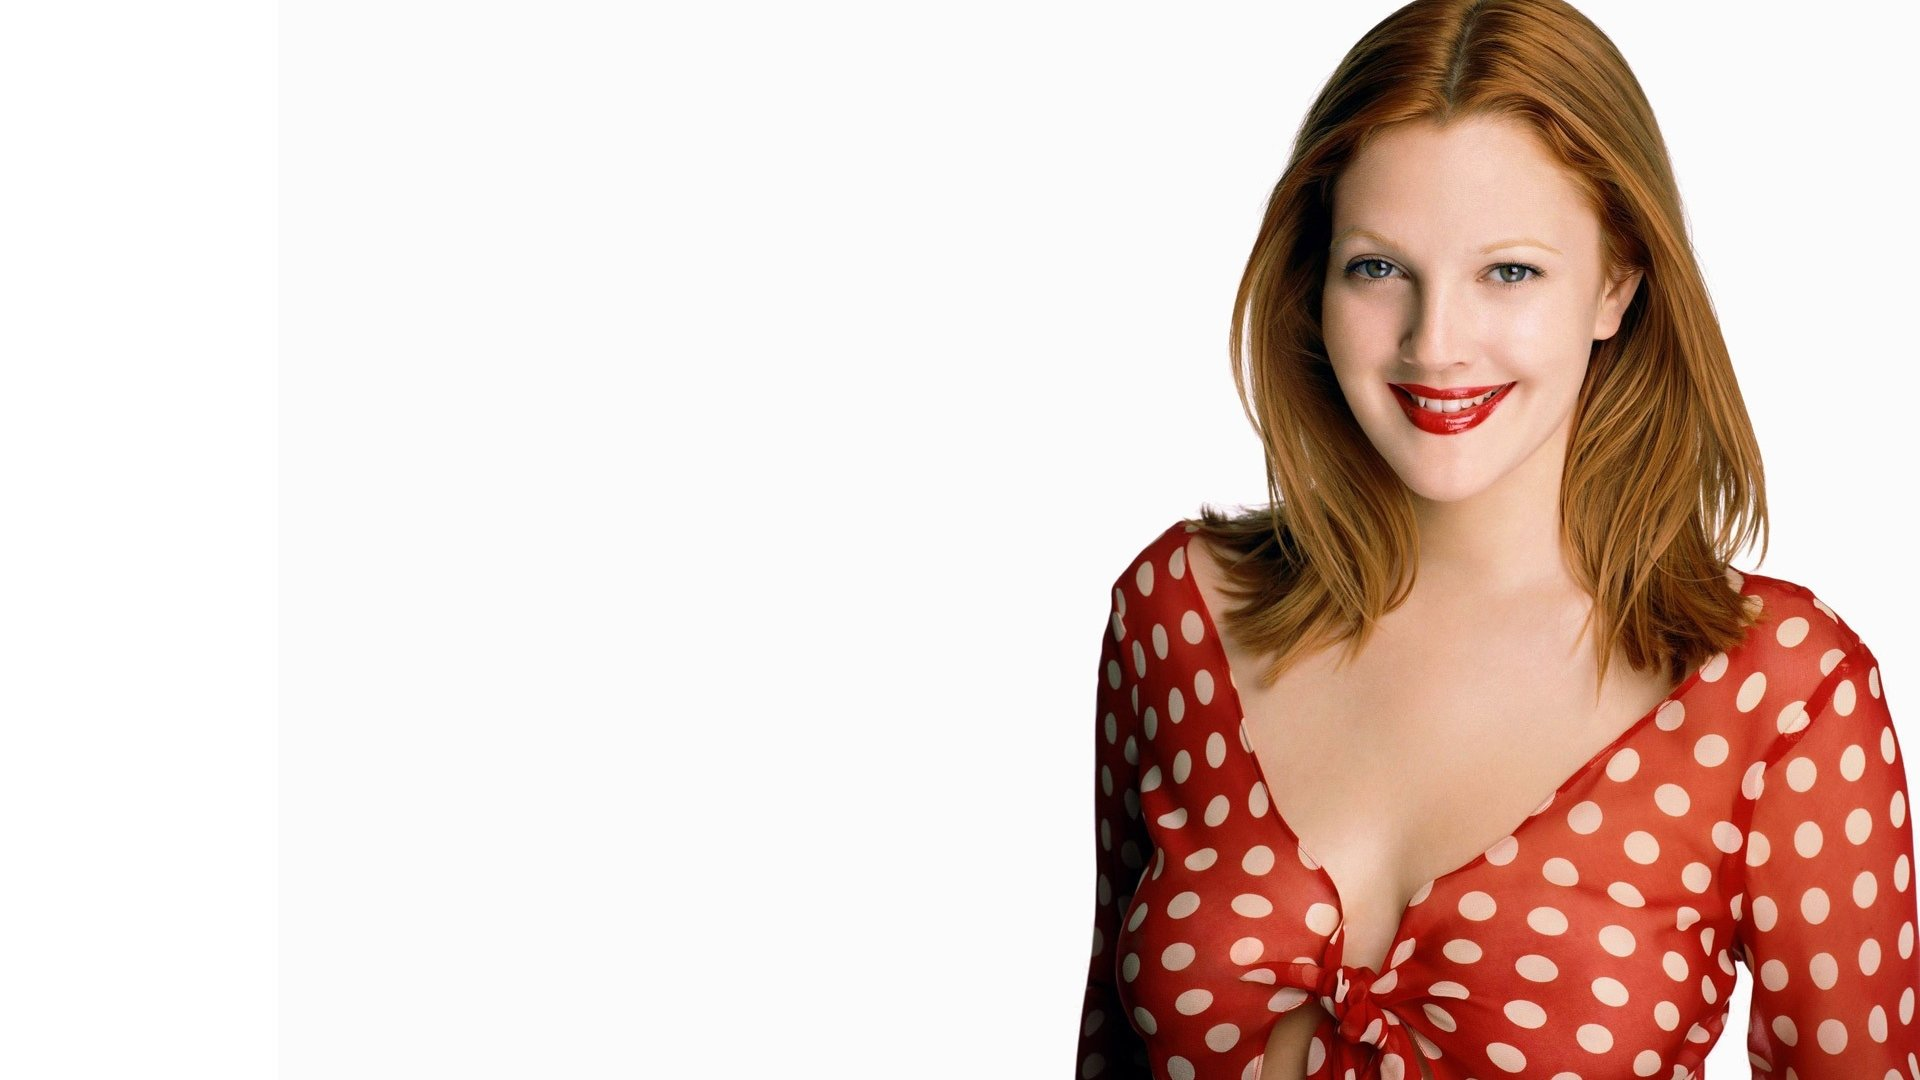 High resolution Drew Barrymore 1080p wallpaper ID:83632 for PC